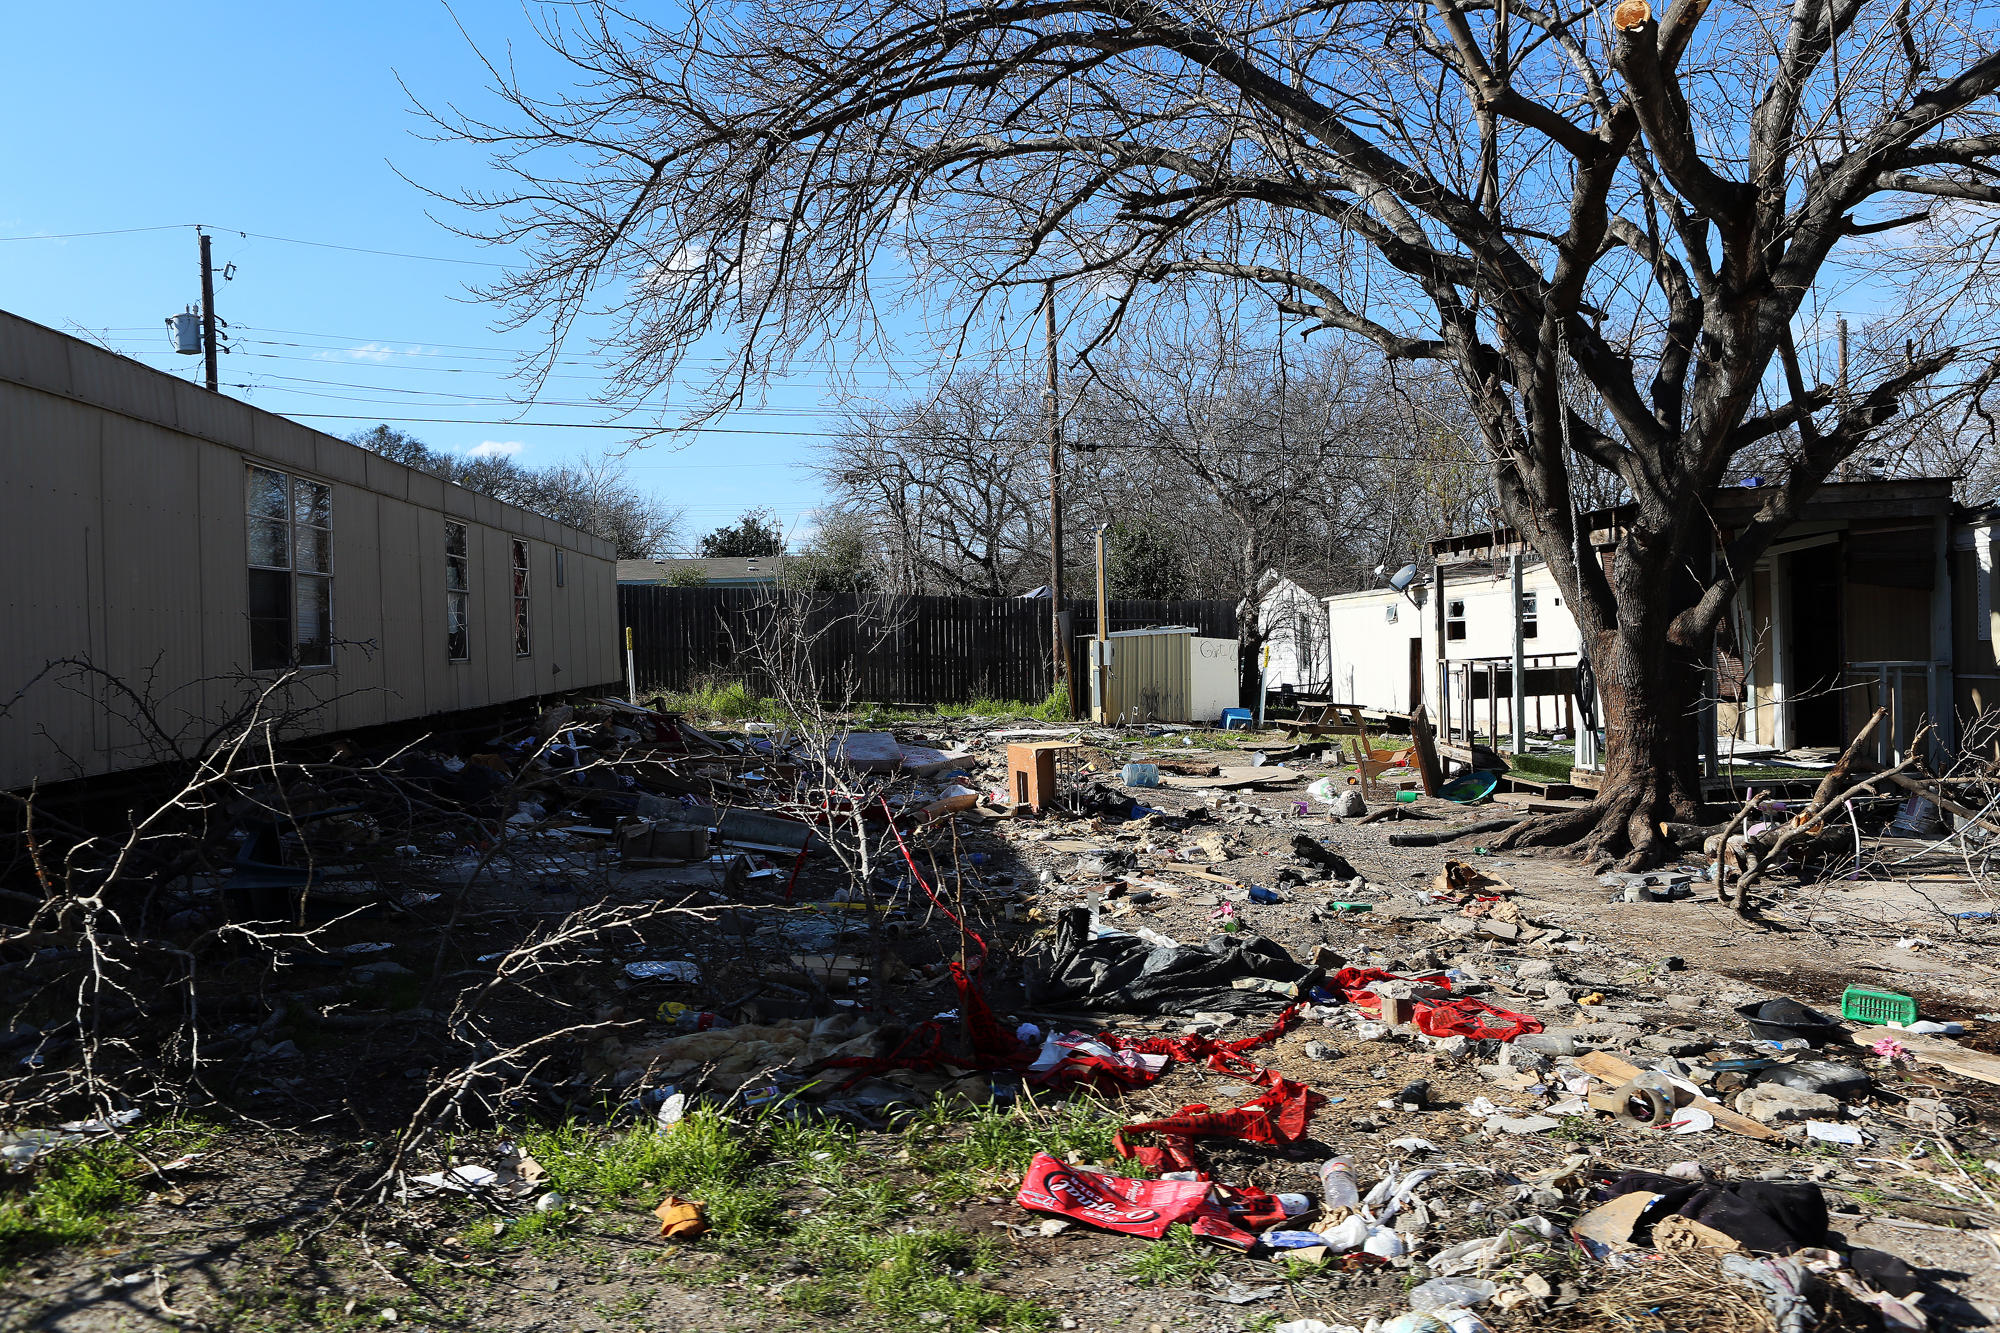 At Comfort Park On Riverside Drive The Trash And Debris Are Least Of Neighbors Problems Still Some Report That Drug Crimes Committed In Plain